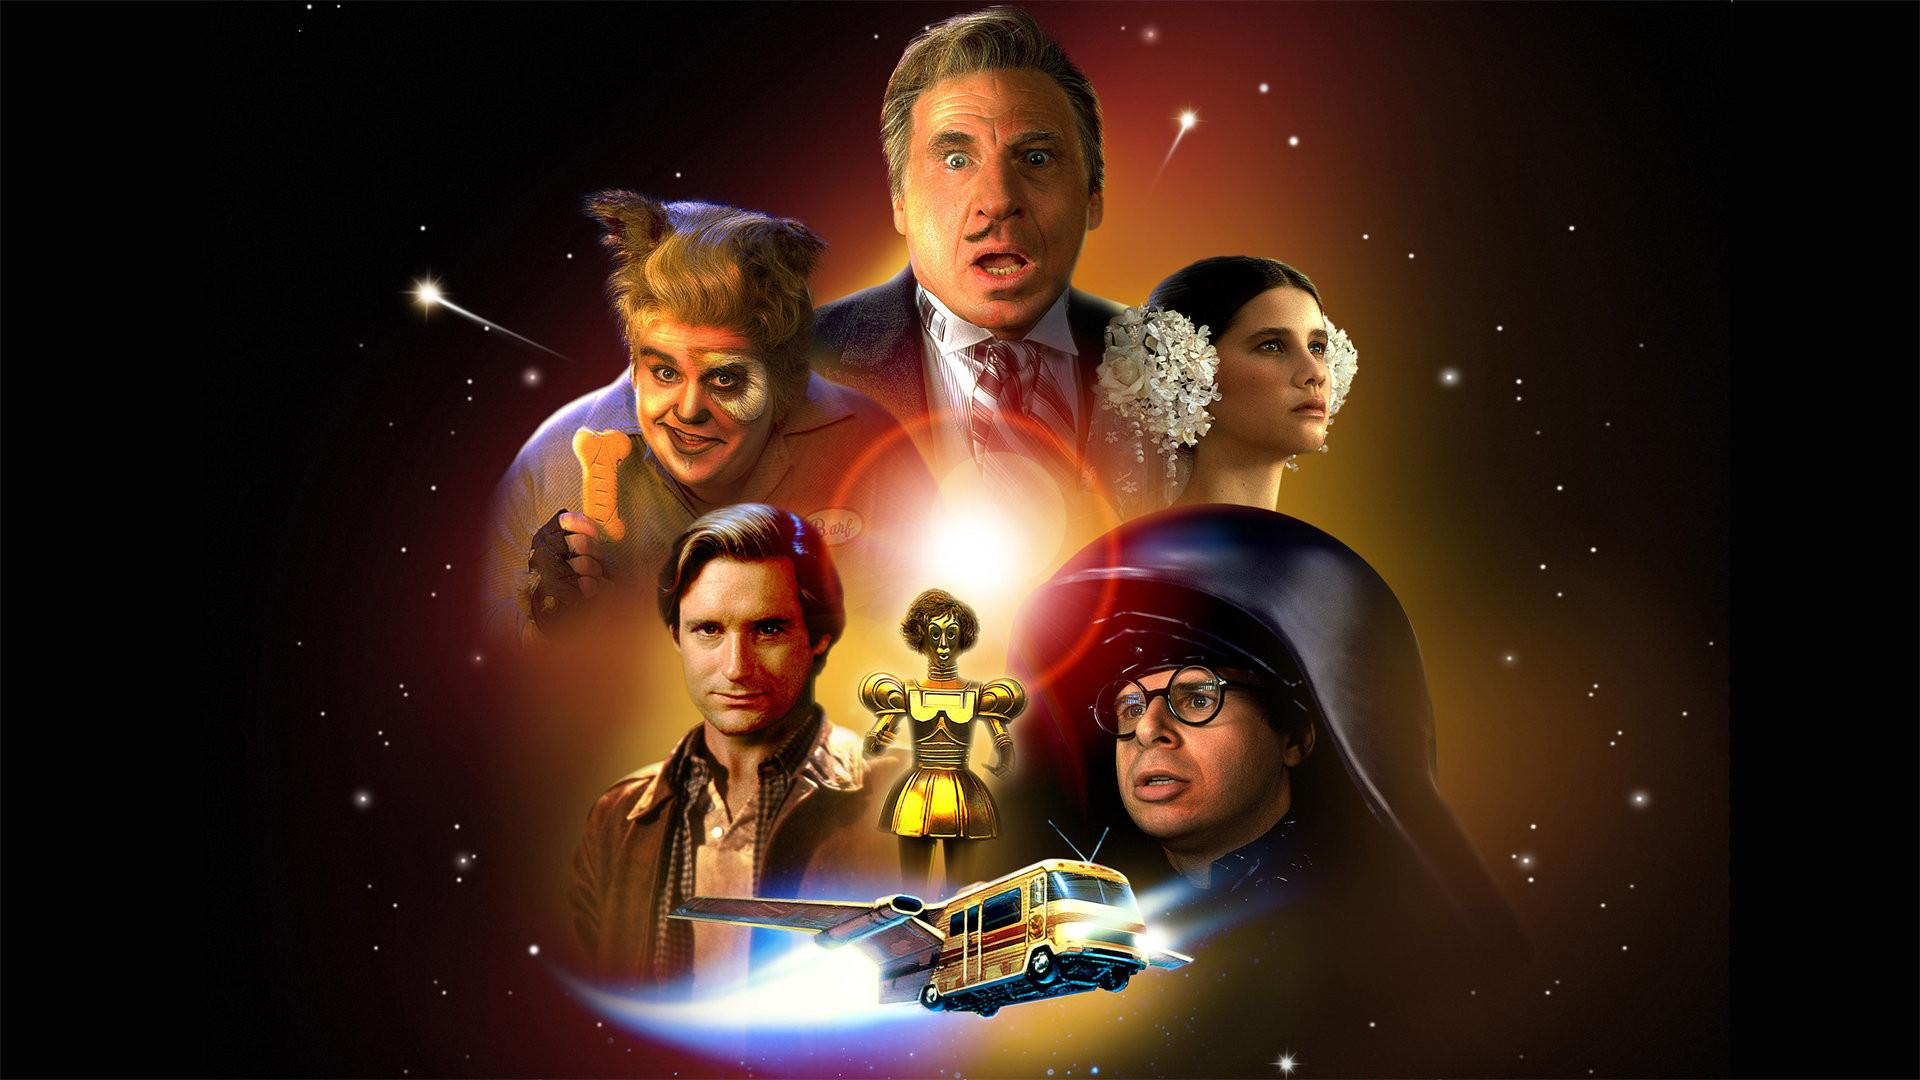 spaceballs wallpaper